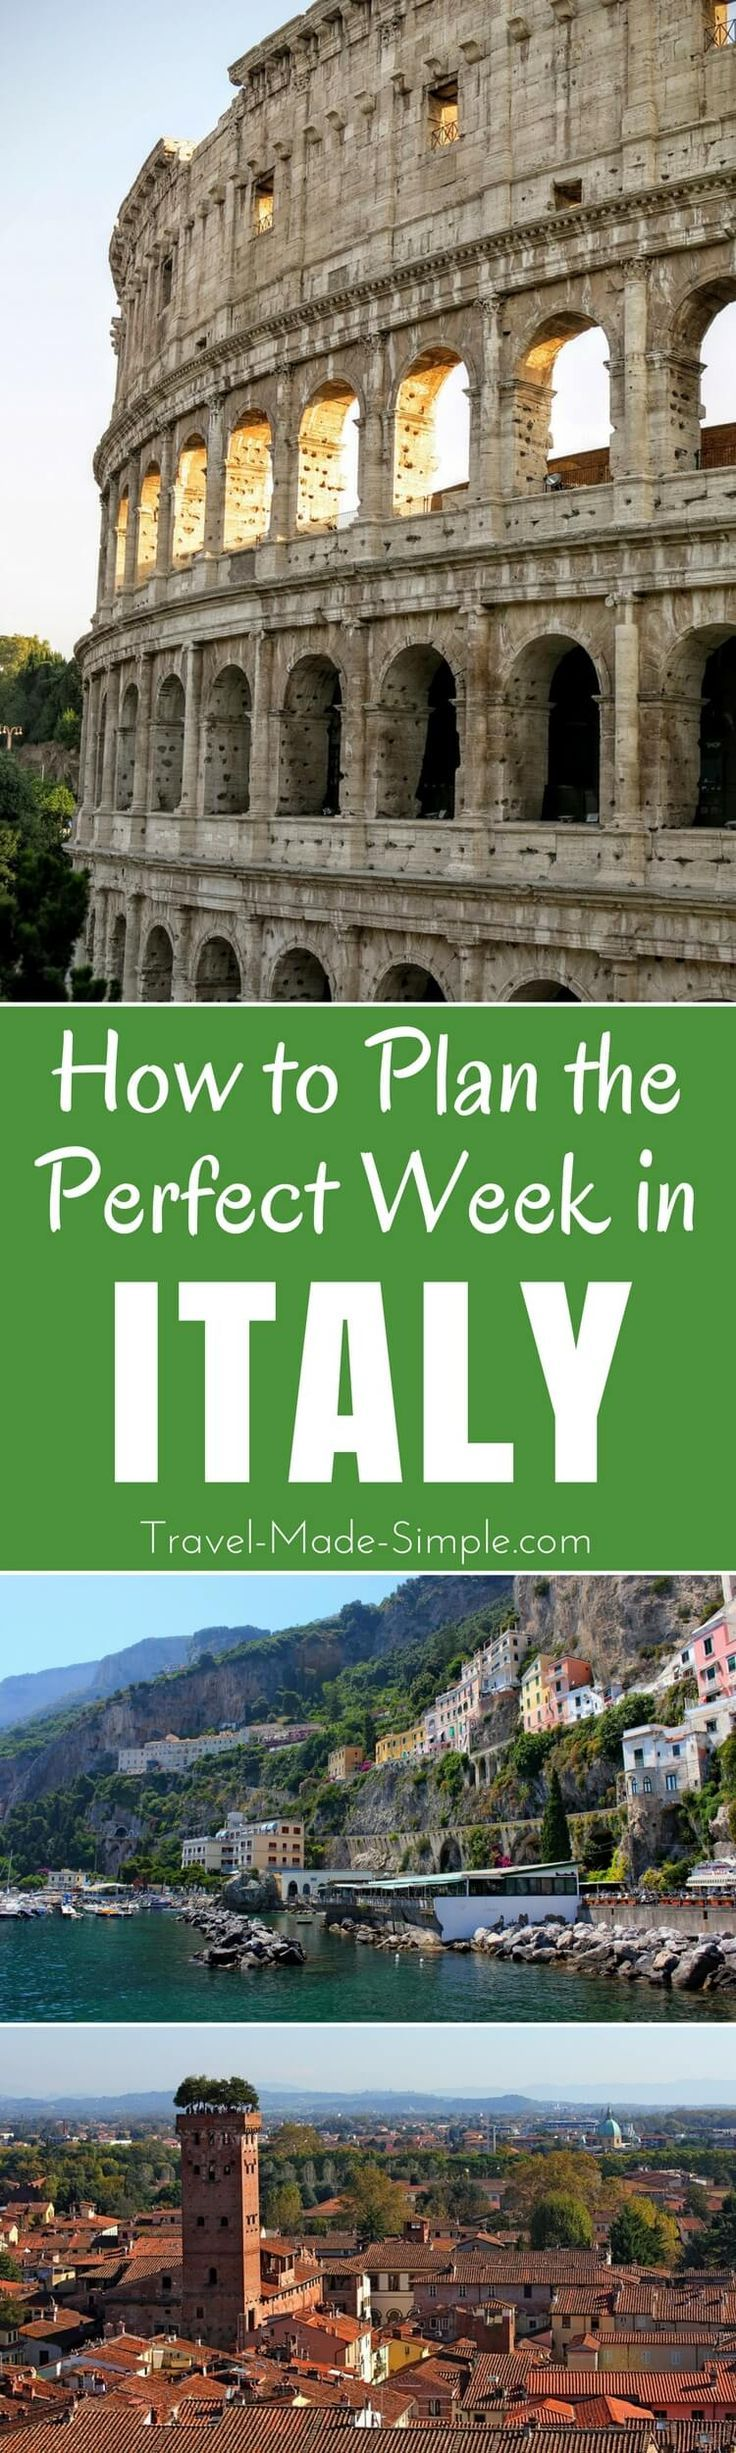 Here's how to make the most of one week in Italy. From the history to the food, plan a trip to Italy with our Italy itinerary and enjoy your dream vacation! one week in Italy | two weeks in Italy | travel to Italy | Italy travel planning tips | Italy attractions | Italy tourist attractions | Italy activities | things to do in Italy | what to do in Italy | plan a trip to Italy | Italy vacation